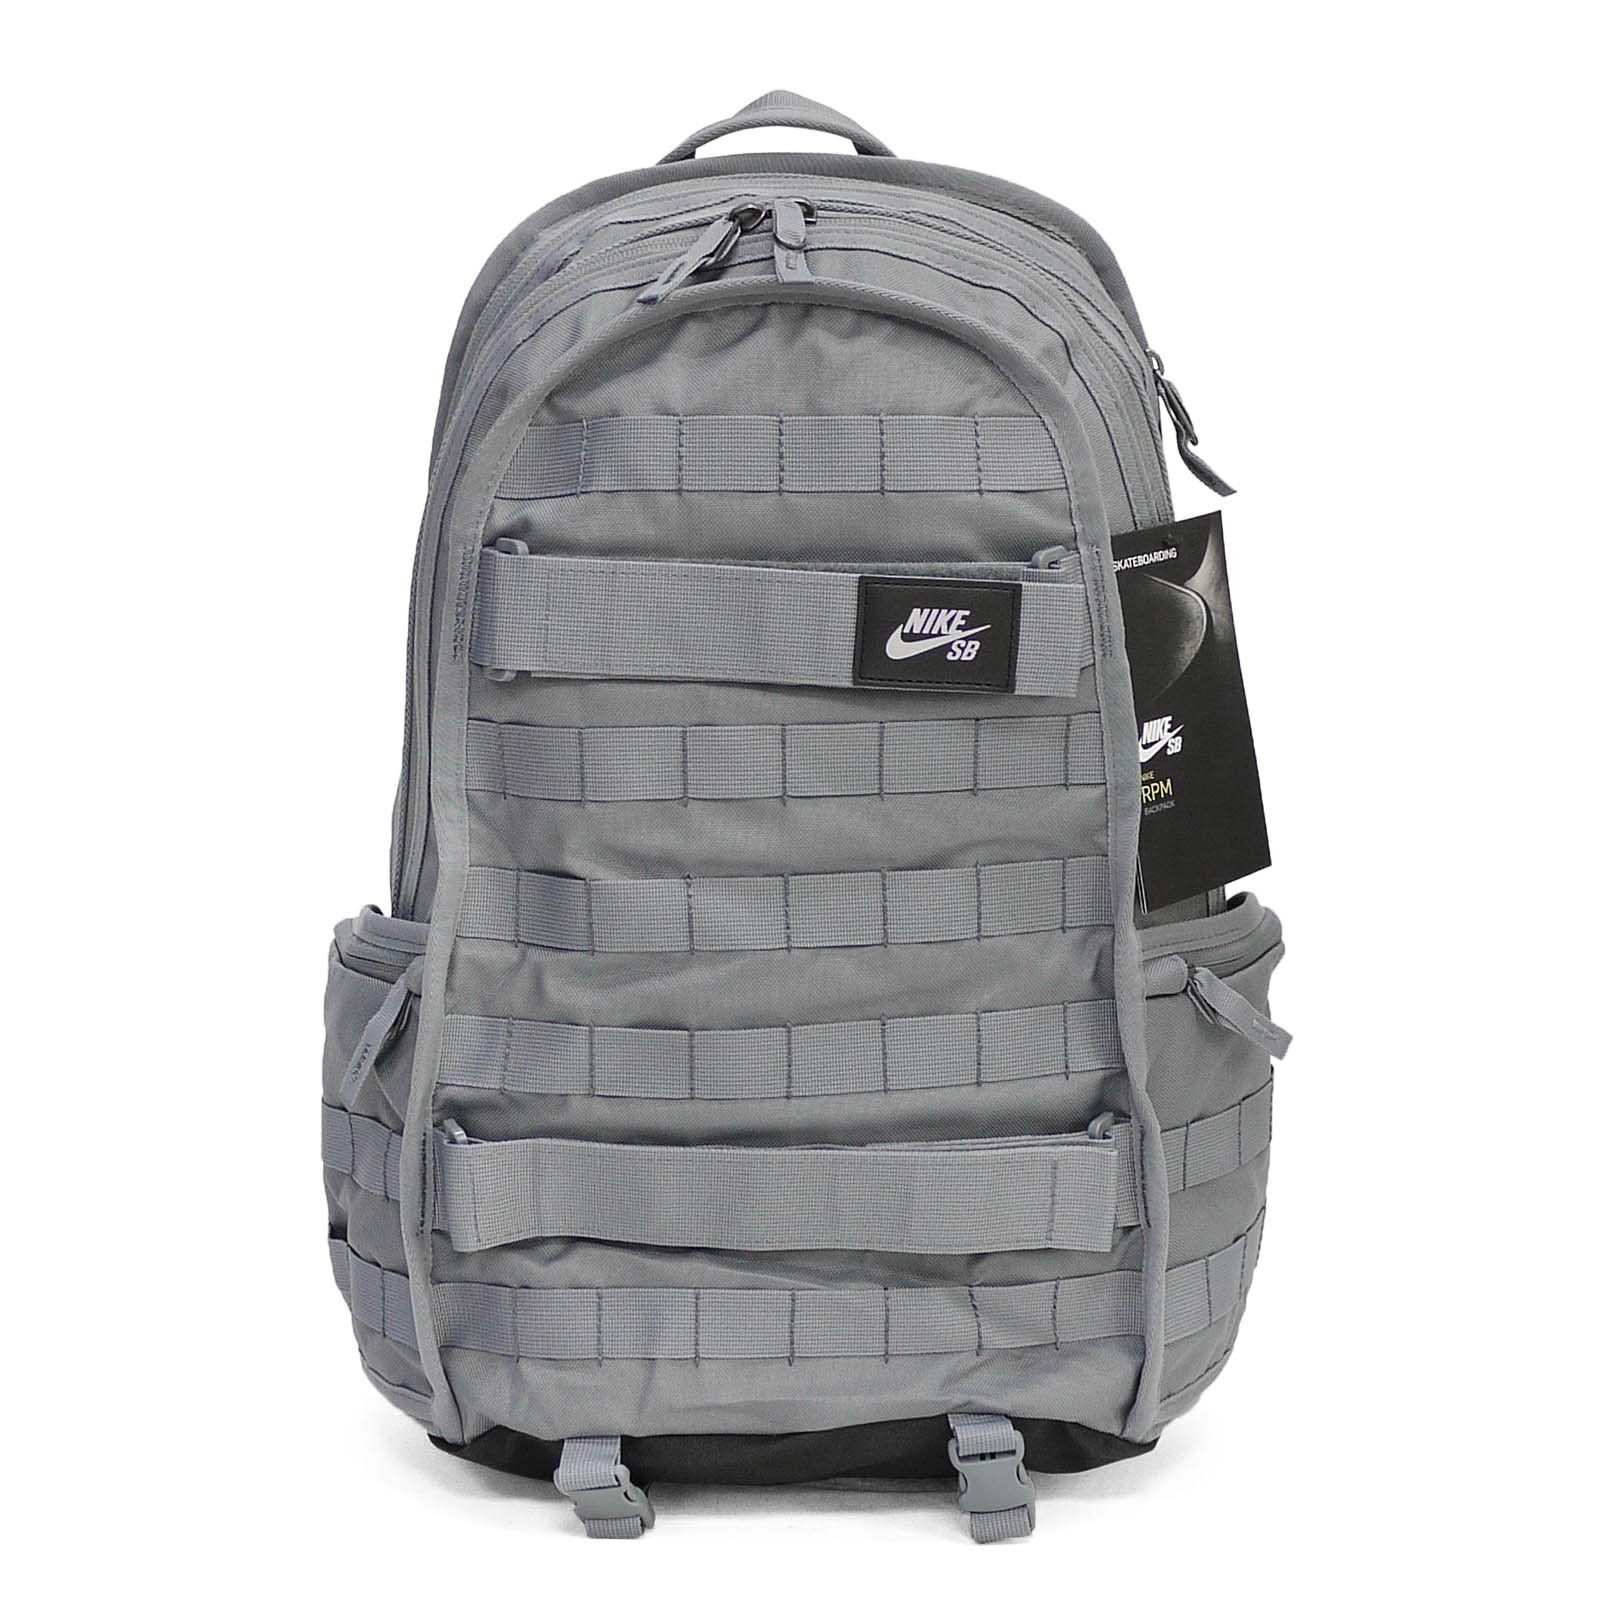 16f12f53a912 Nike SB RPM Solid Backpack Cool Grey Black     You can find more ...